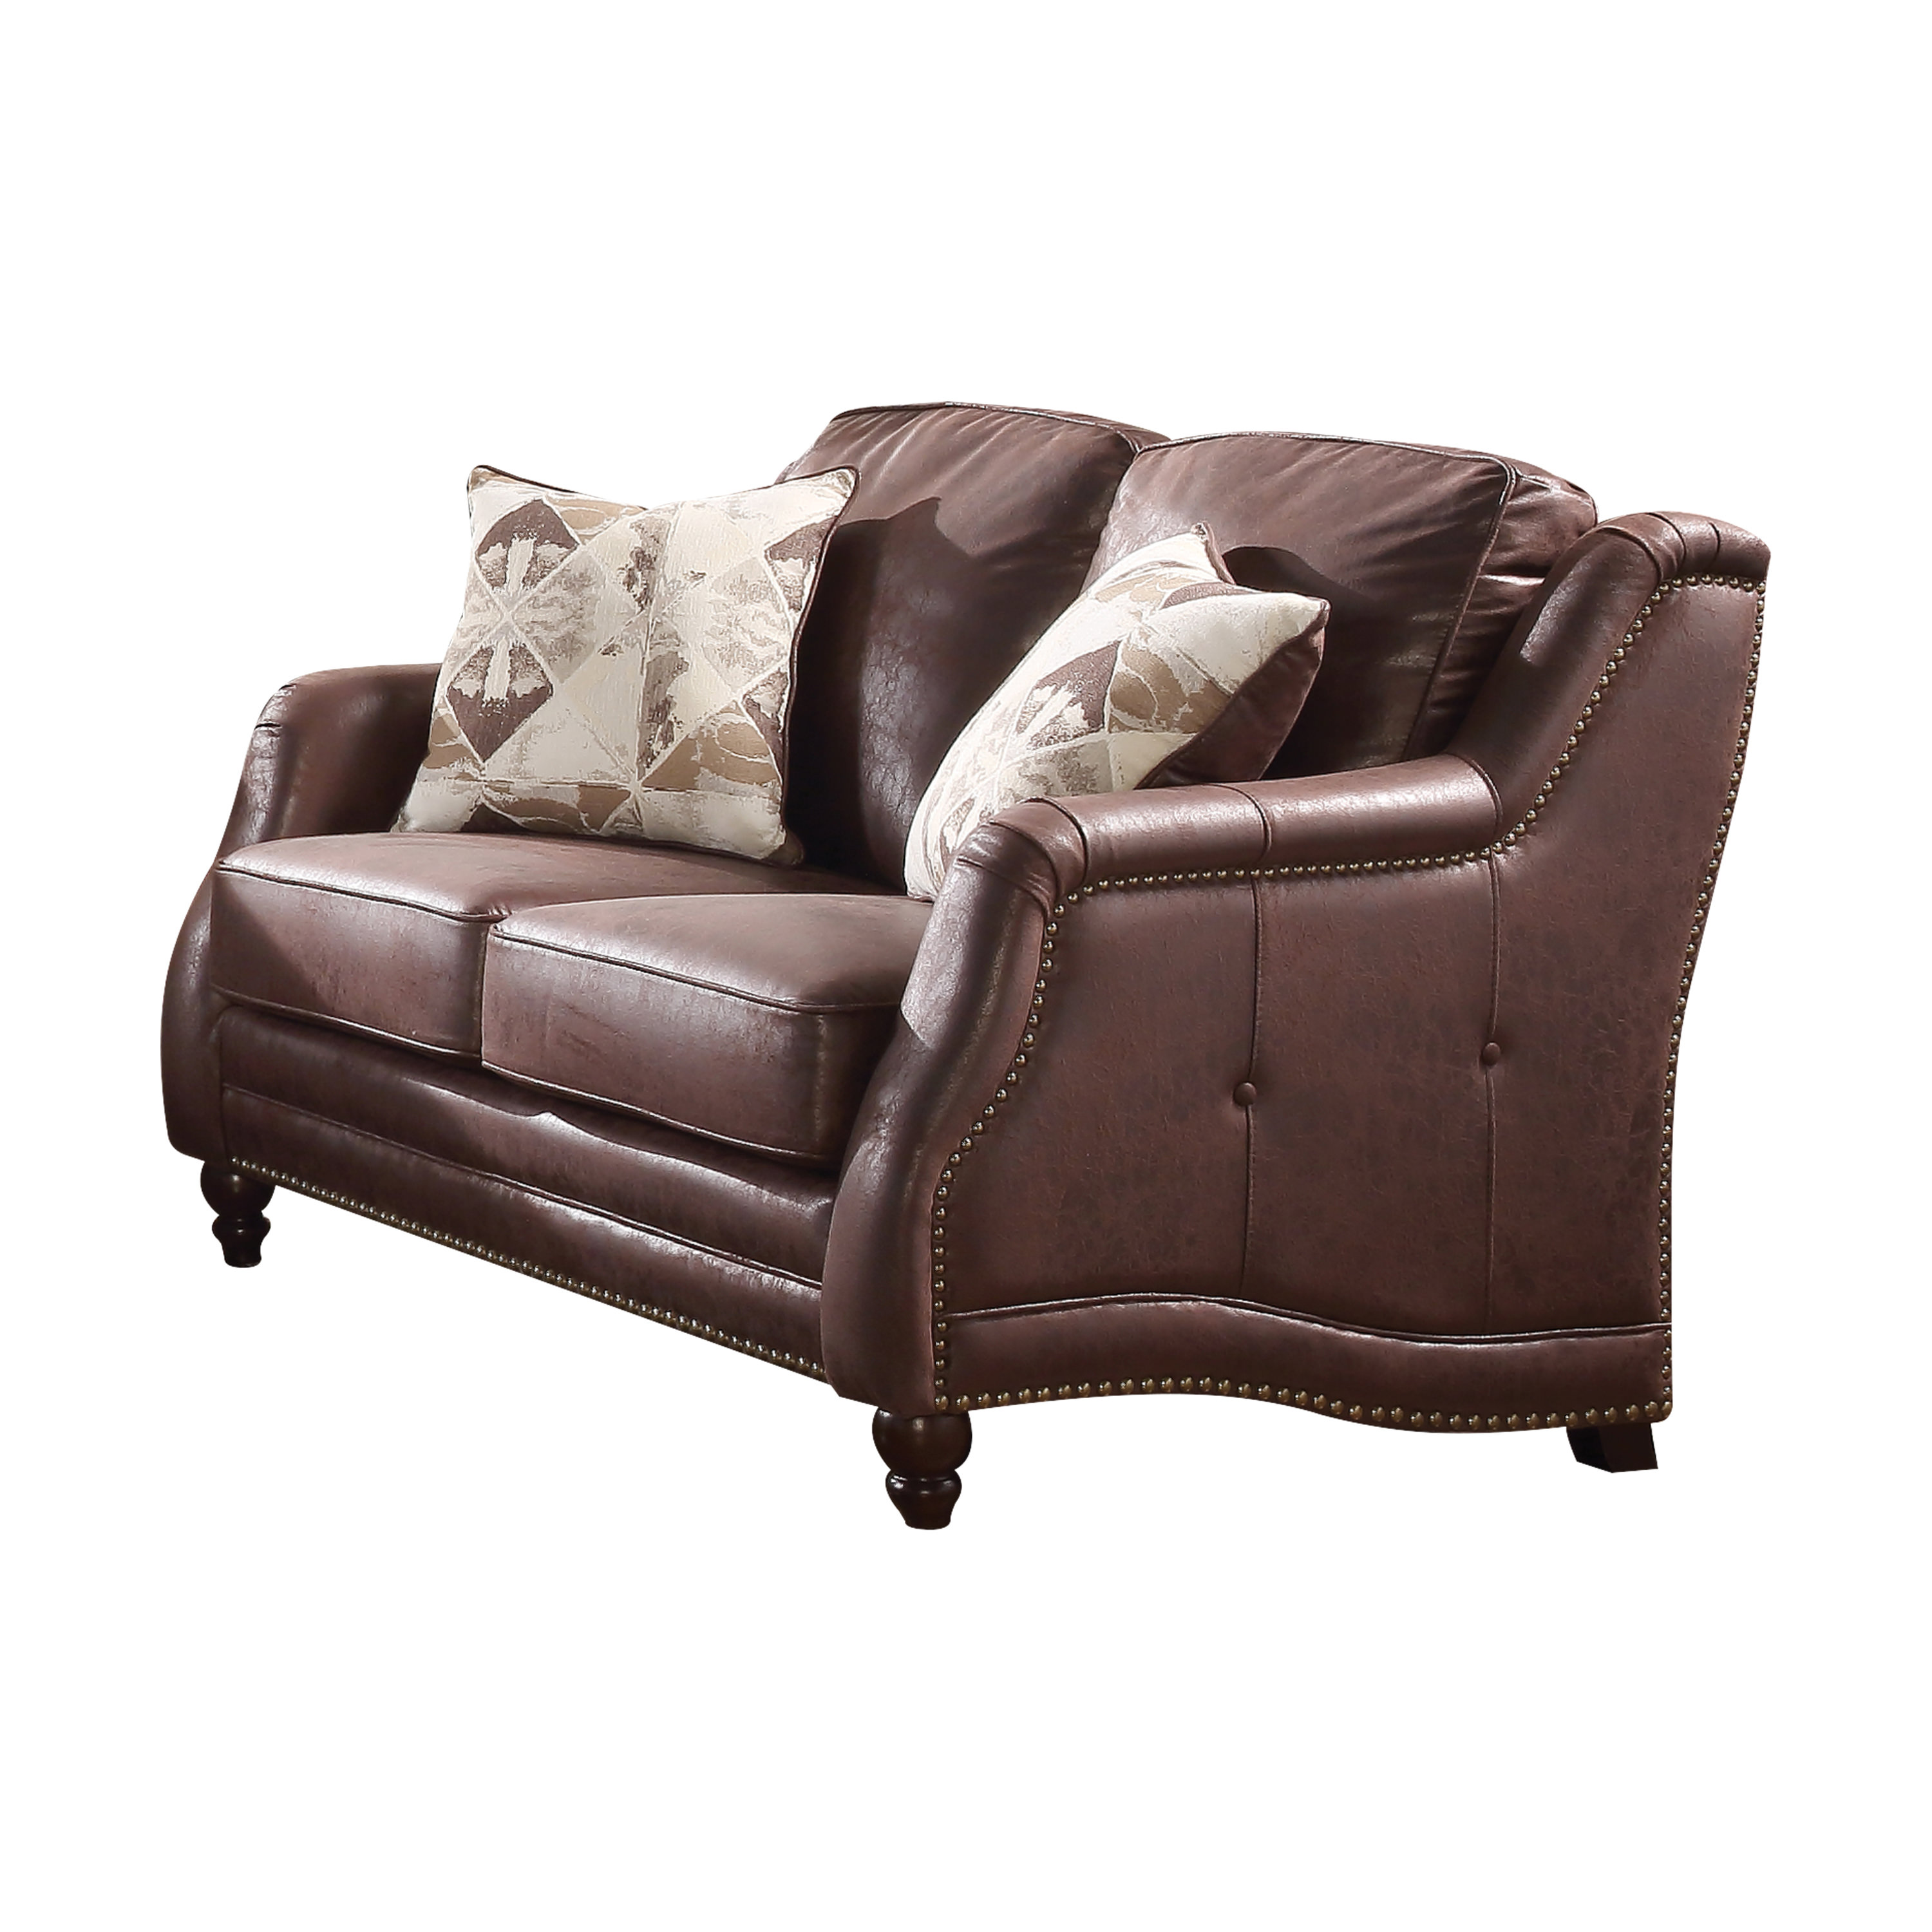 Acme Nickolas Stationary Loveseat with 2 Pillows in Chocolate Fabric